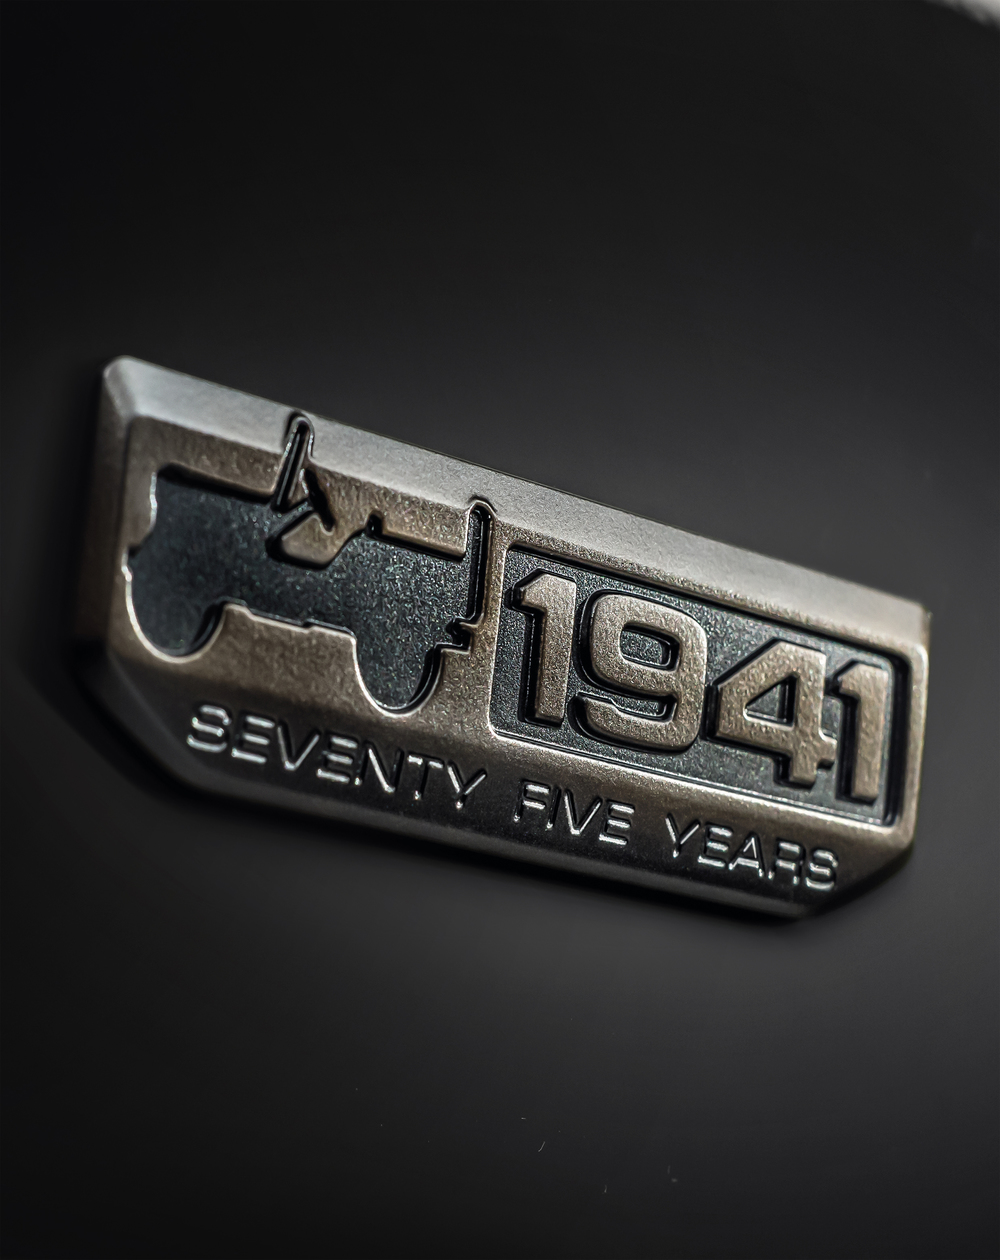 160224_Jeep_Badge_75th_Anniversary_01.jpg